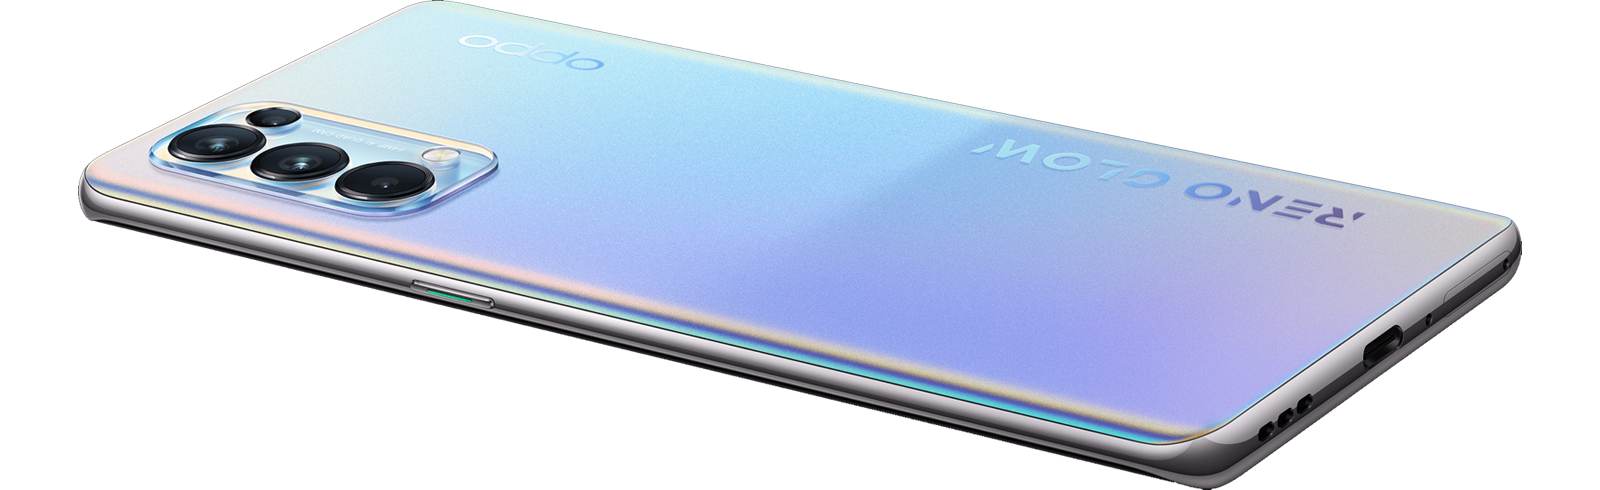 Oppo Reno5 and Reno5 Pro 5G go official with 90Hz OLED displays, 65W fast charging